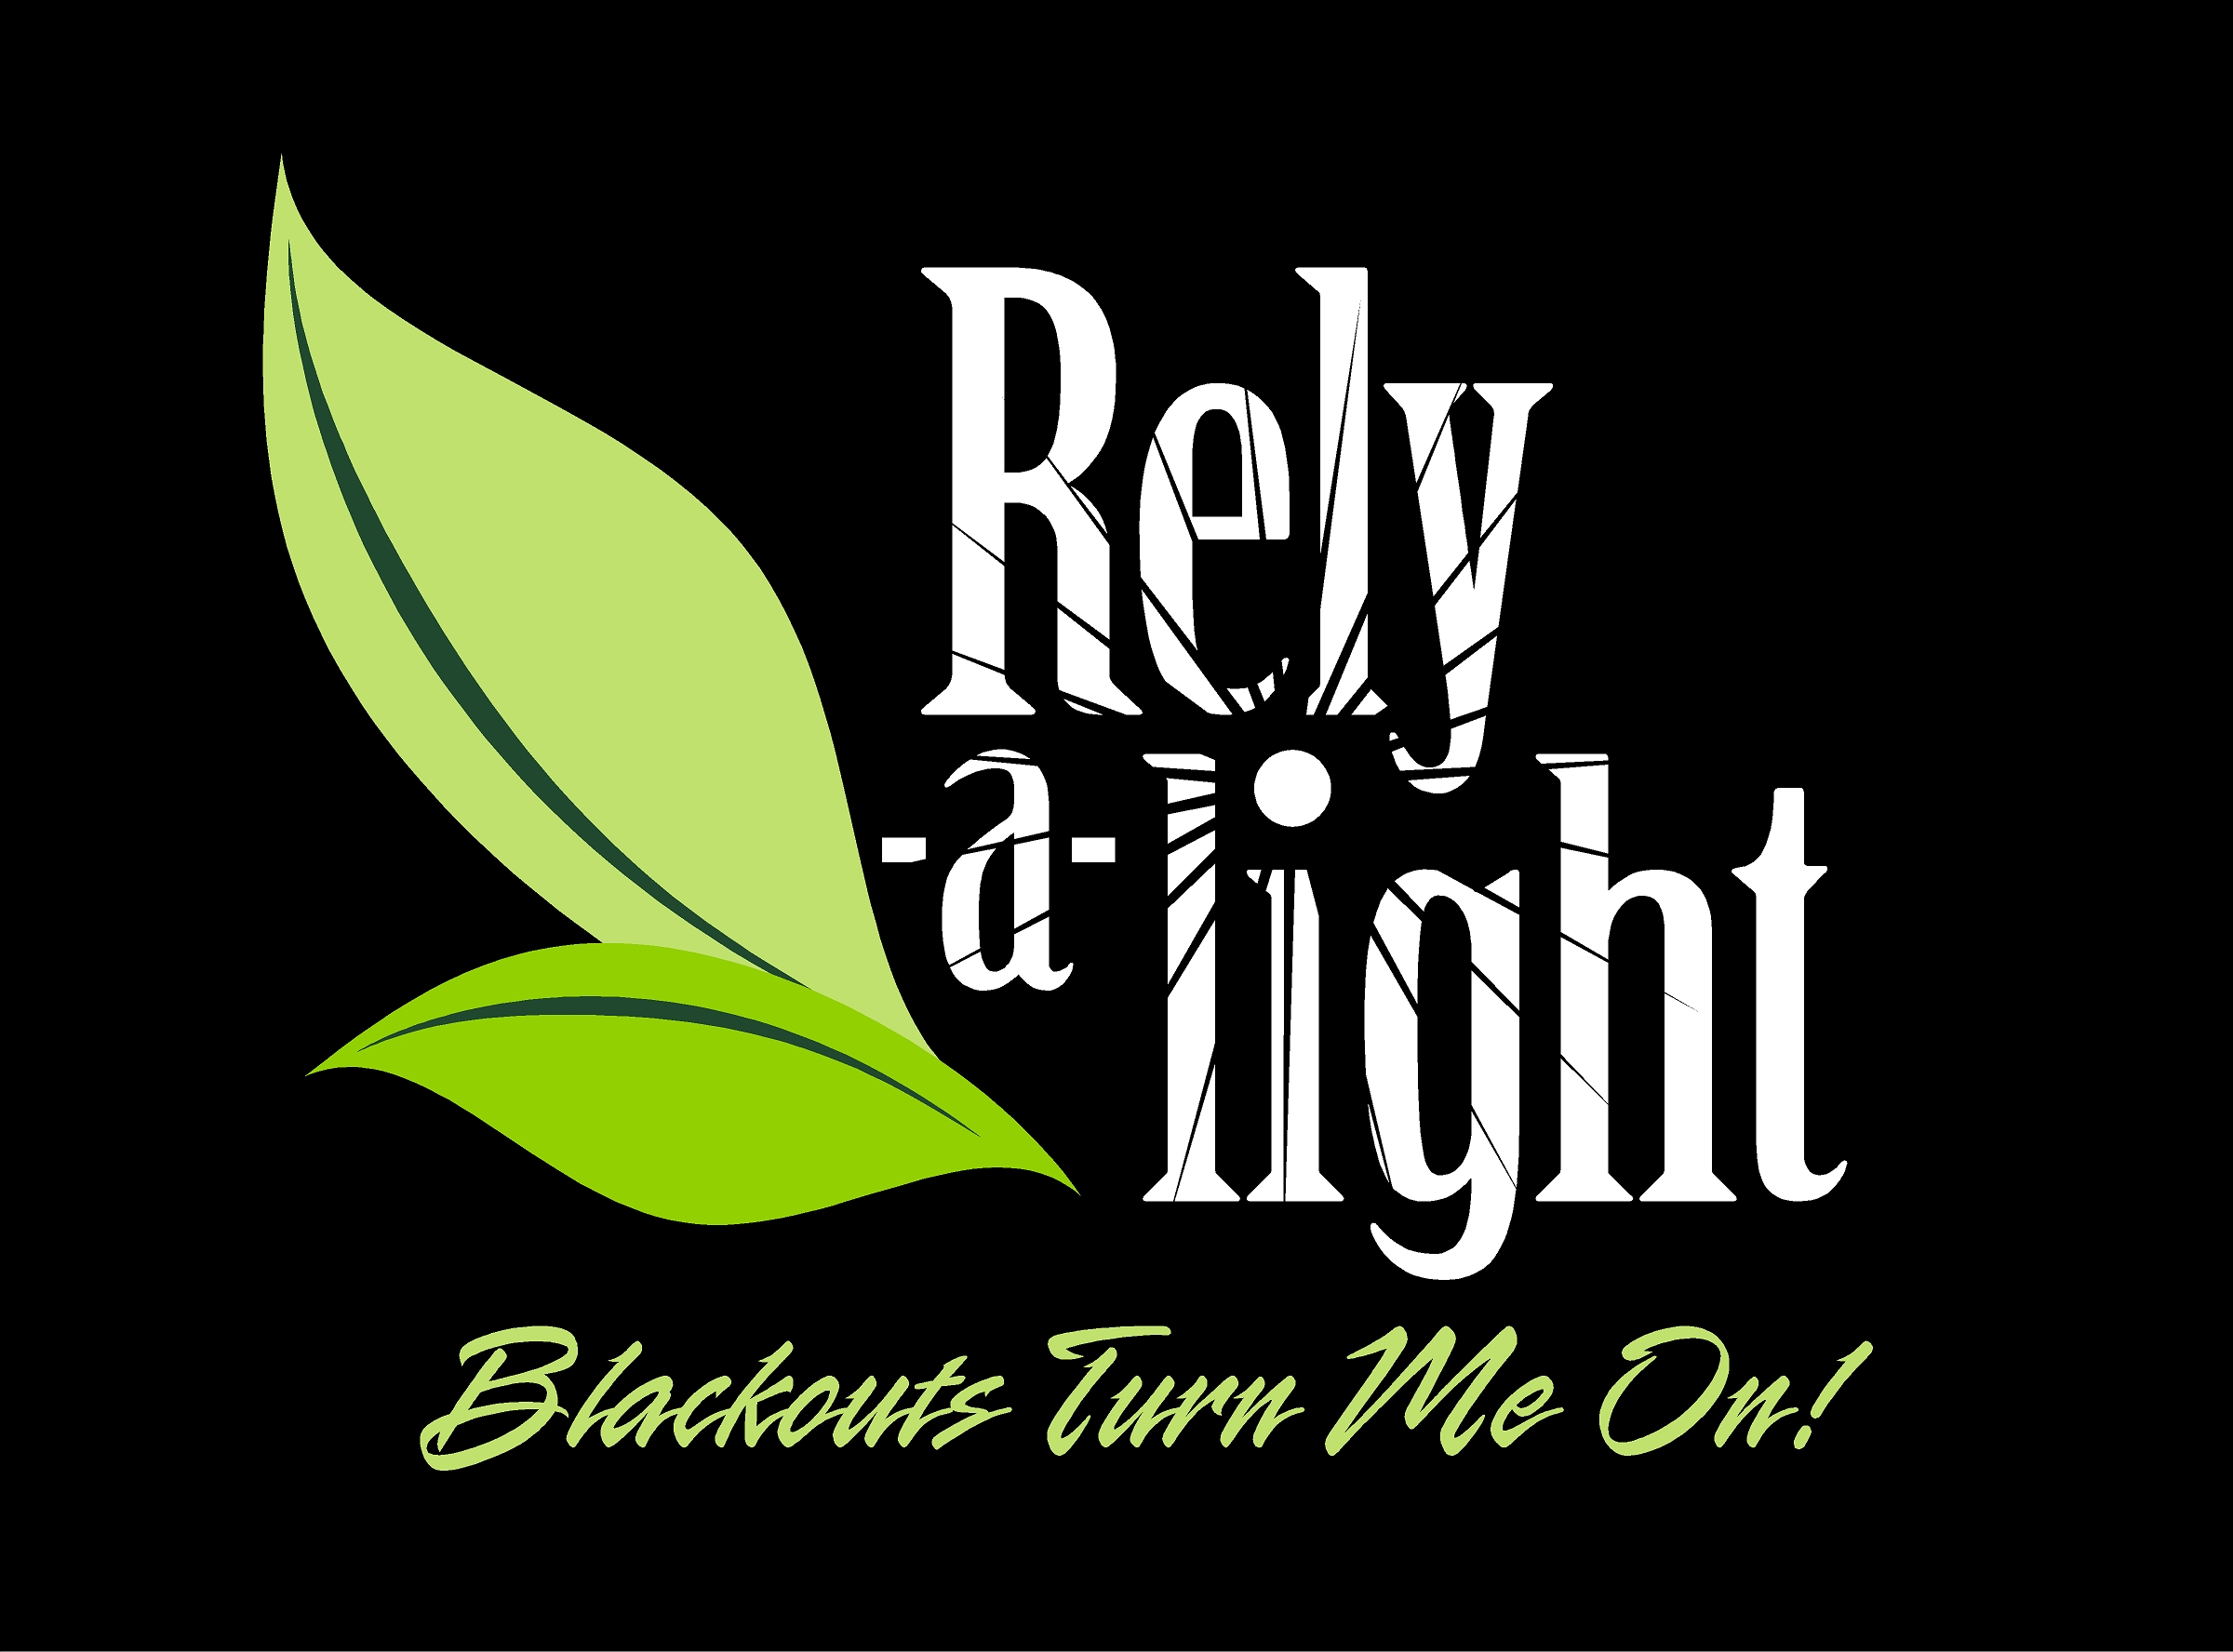 rely-a-light option1.jpg